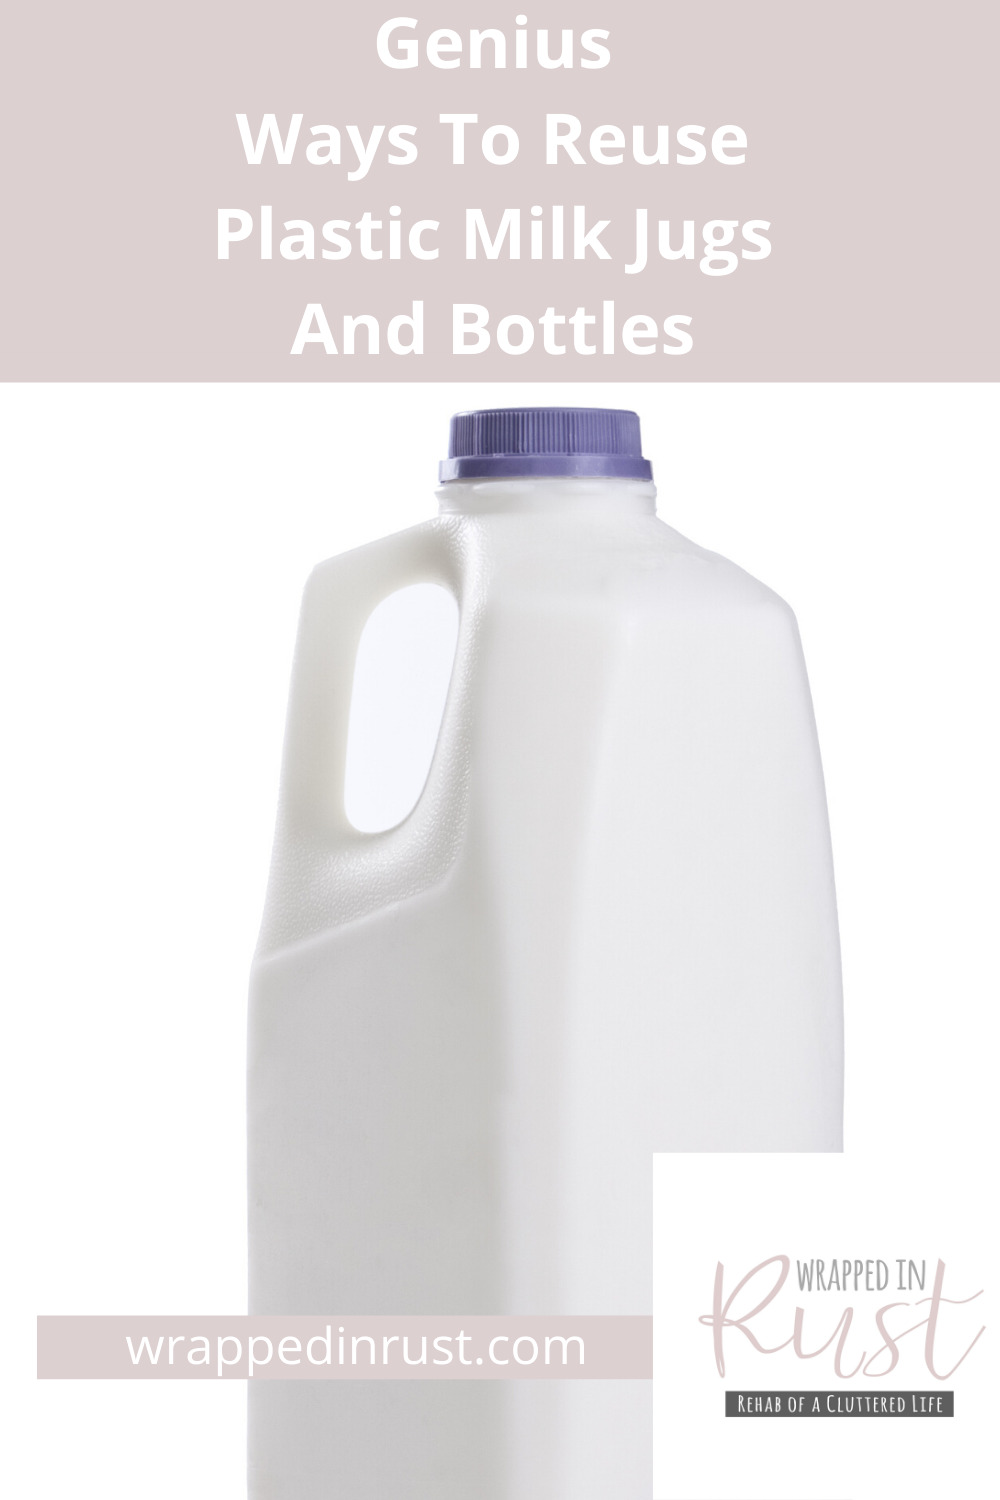 People who are smart, are also resourceful. They do not waste much, especially plastic. Why not try one of these 18 ways to reuse plastic milk jugs and bottles. And, save money while you do it. #frugalliving #upcycle #reuseplasticmilkjugs